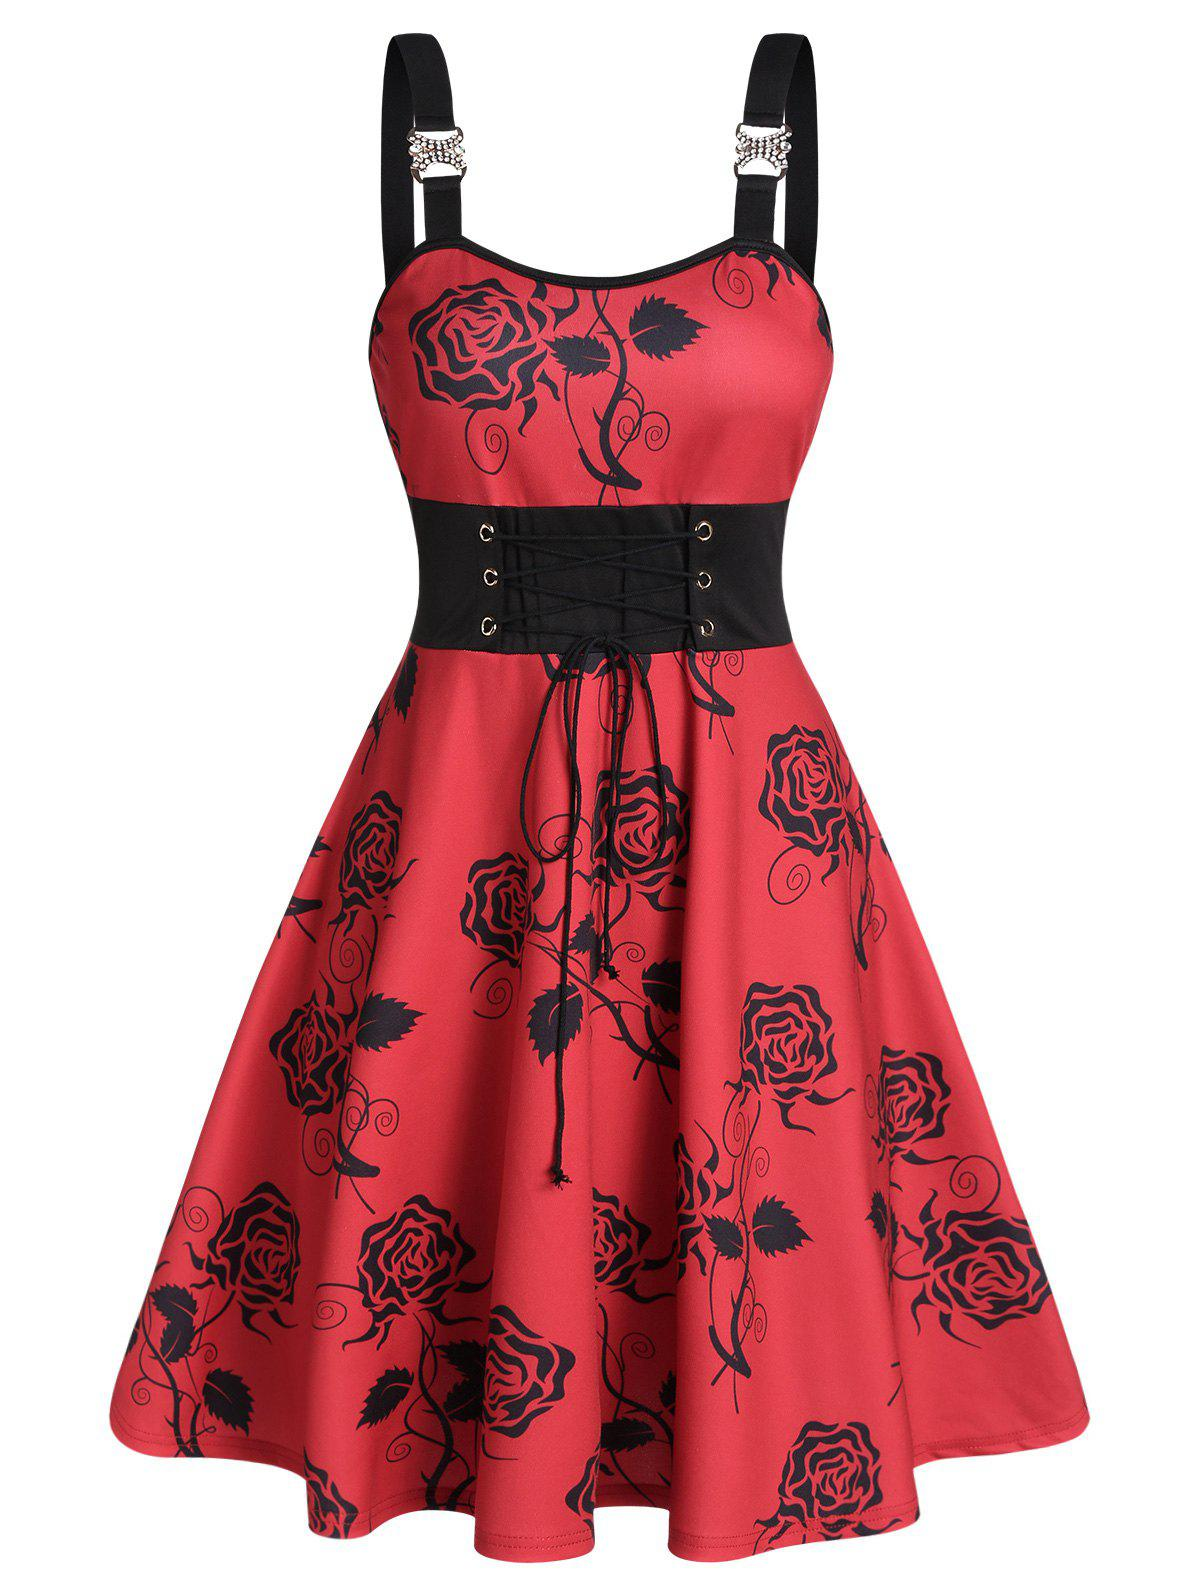 Chic Floral Print Rhinestone Buckle Lace Up Cami Dress